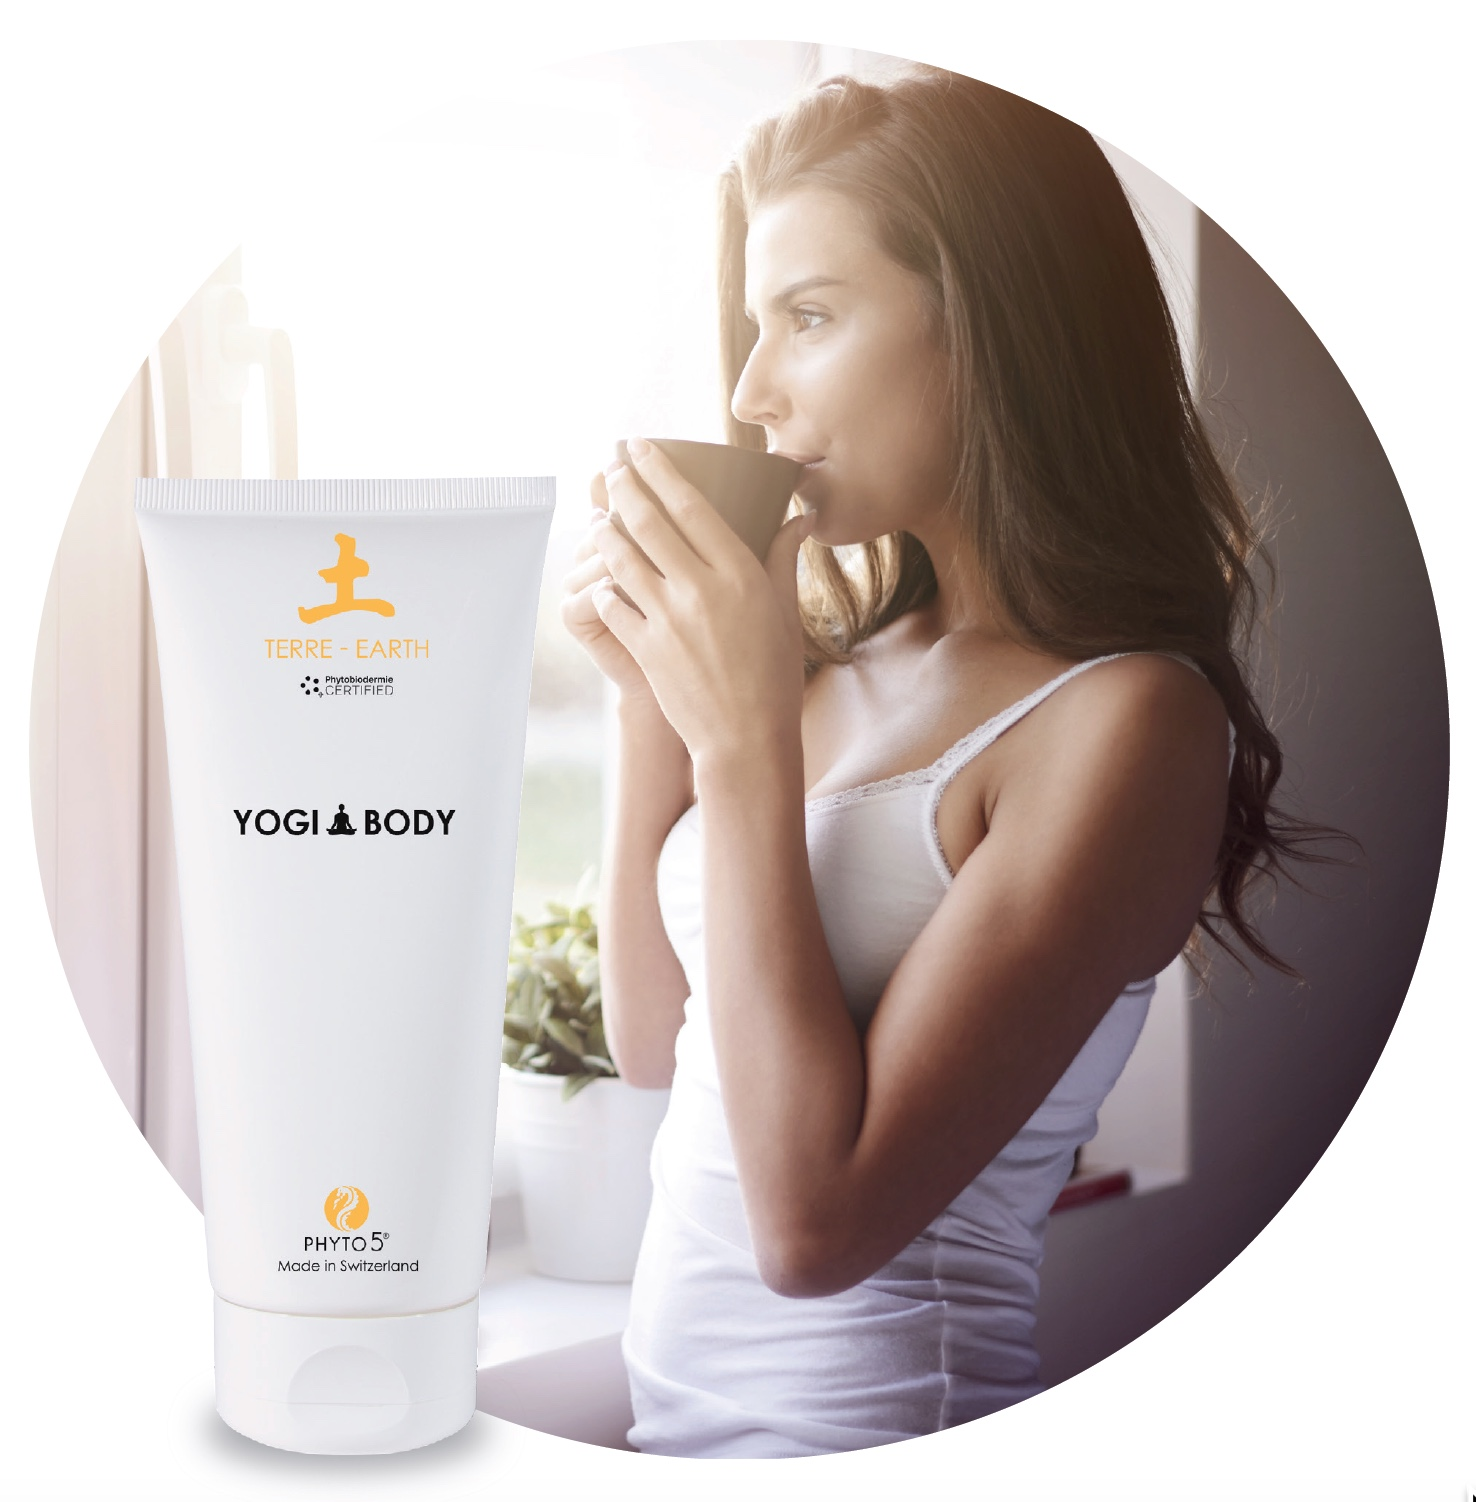 earth-yogi-body-gel-promo-pic.jpg